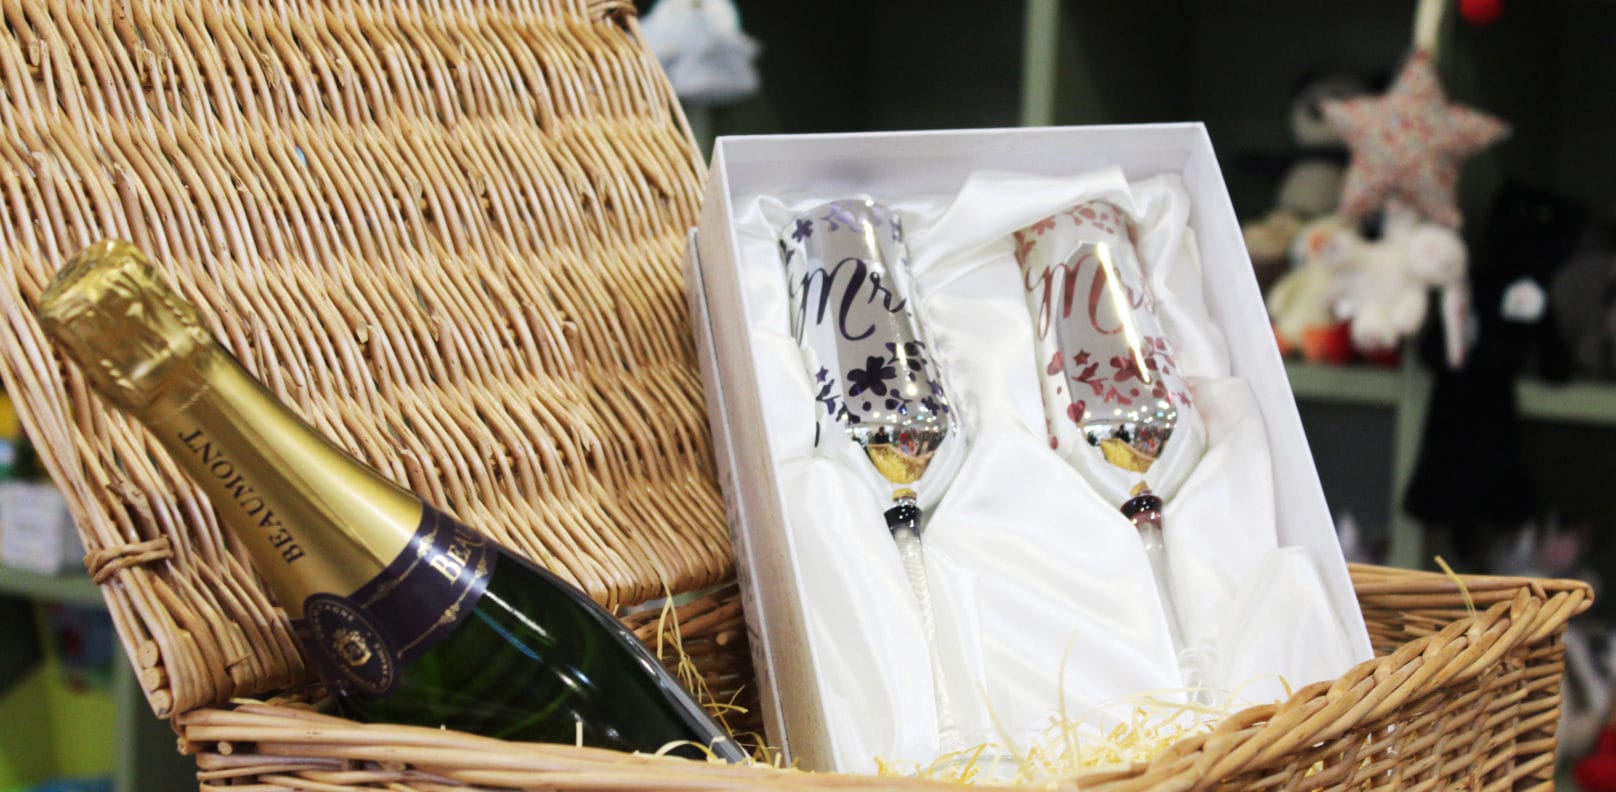 Champagne glasses and bottle from Pippin Gift Shop